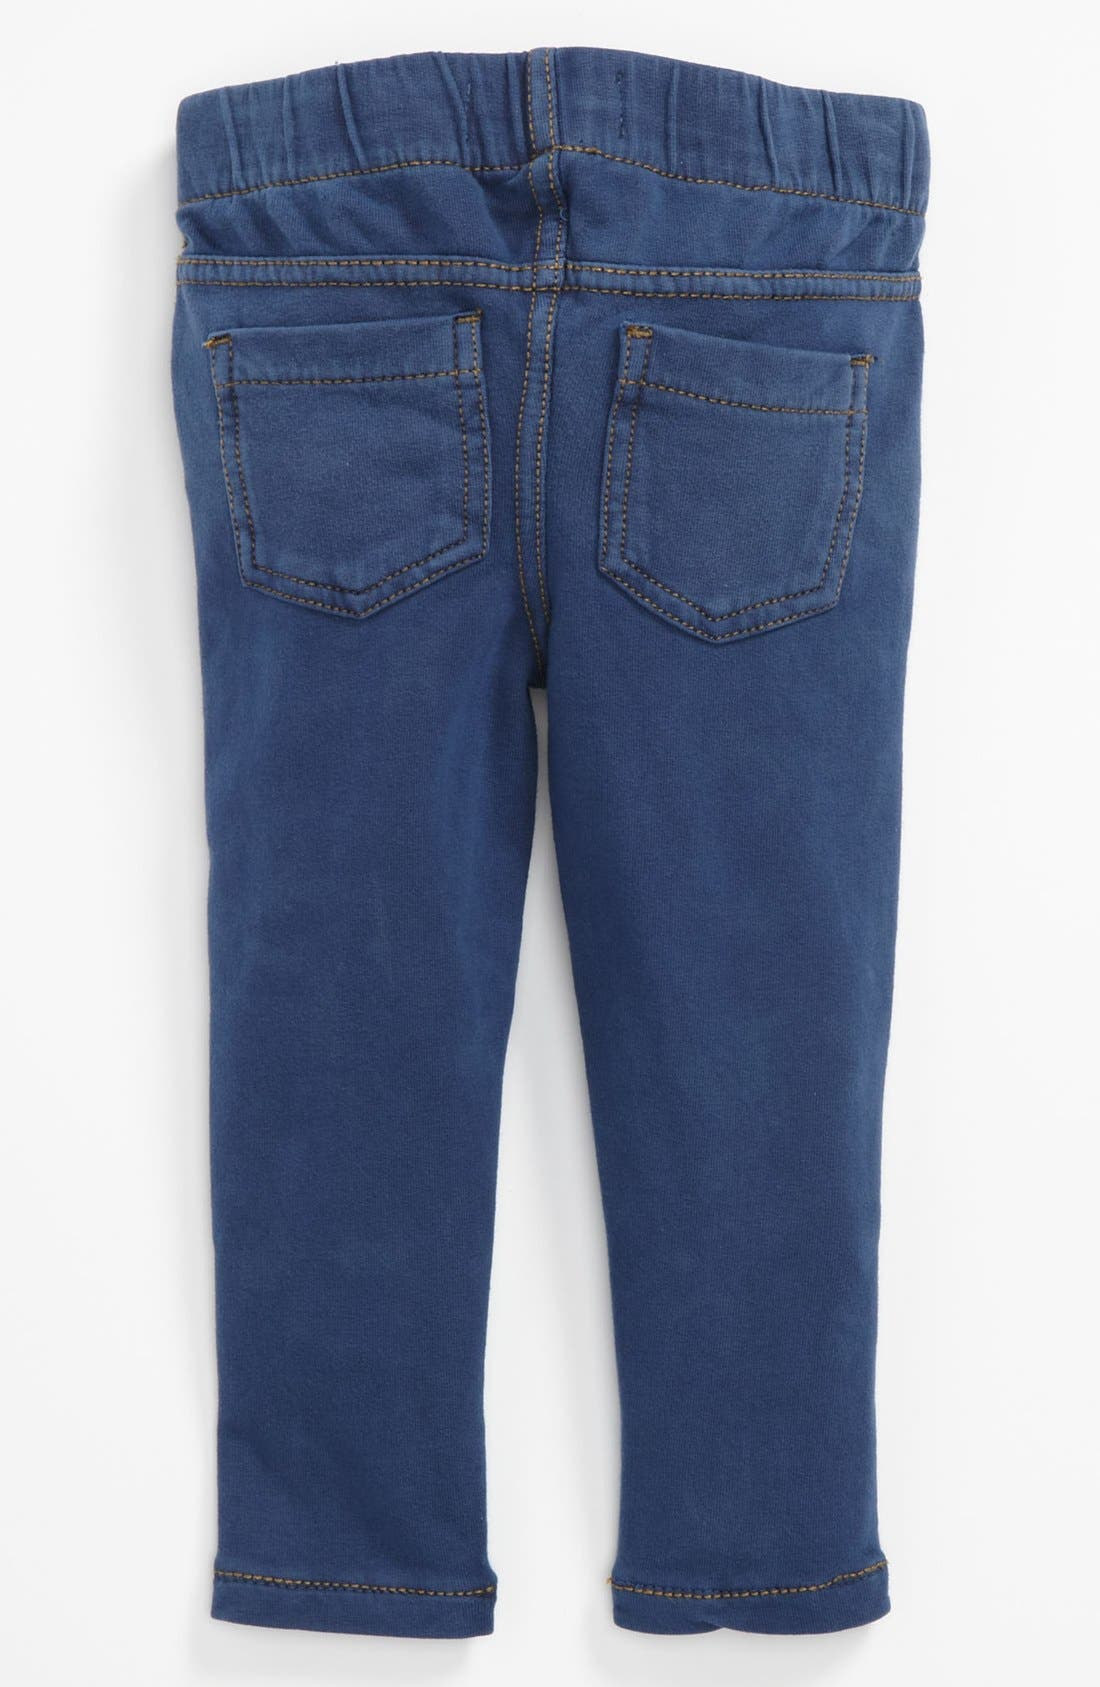 Main Image - Tucker + Tate 'Sadie' Denim Jeggings (Baby Girls)